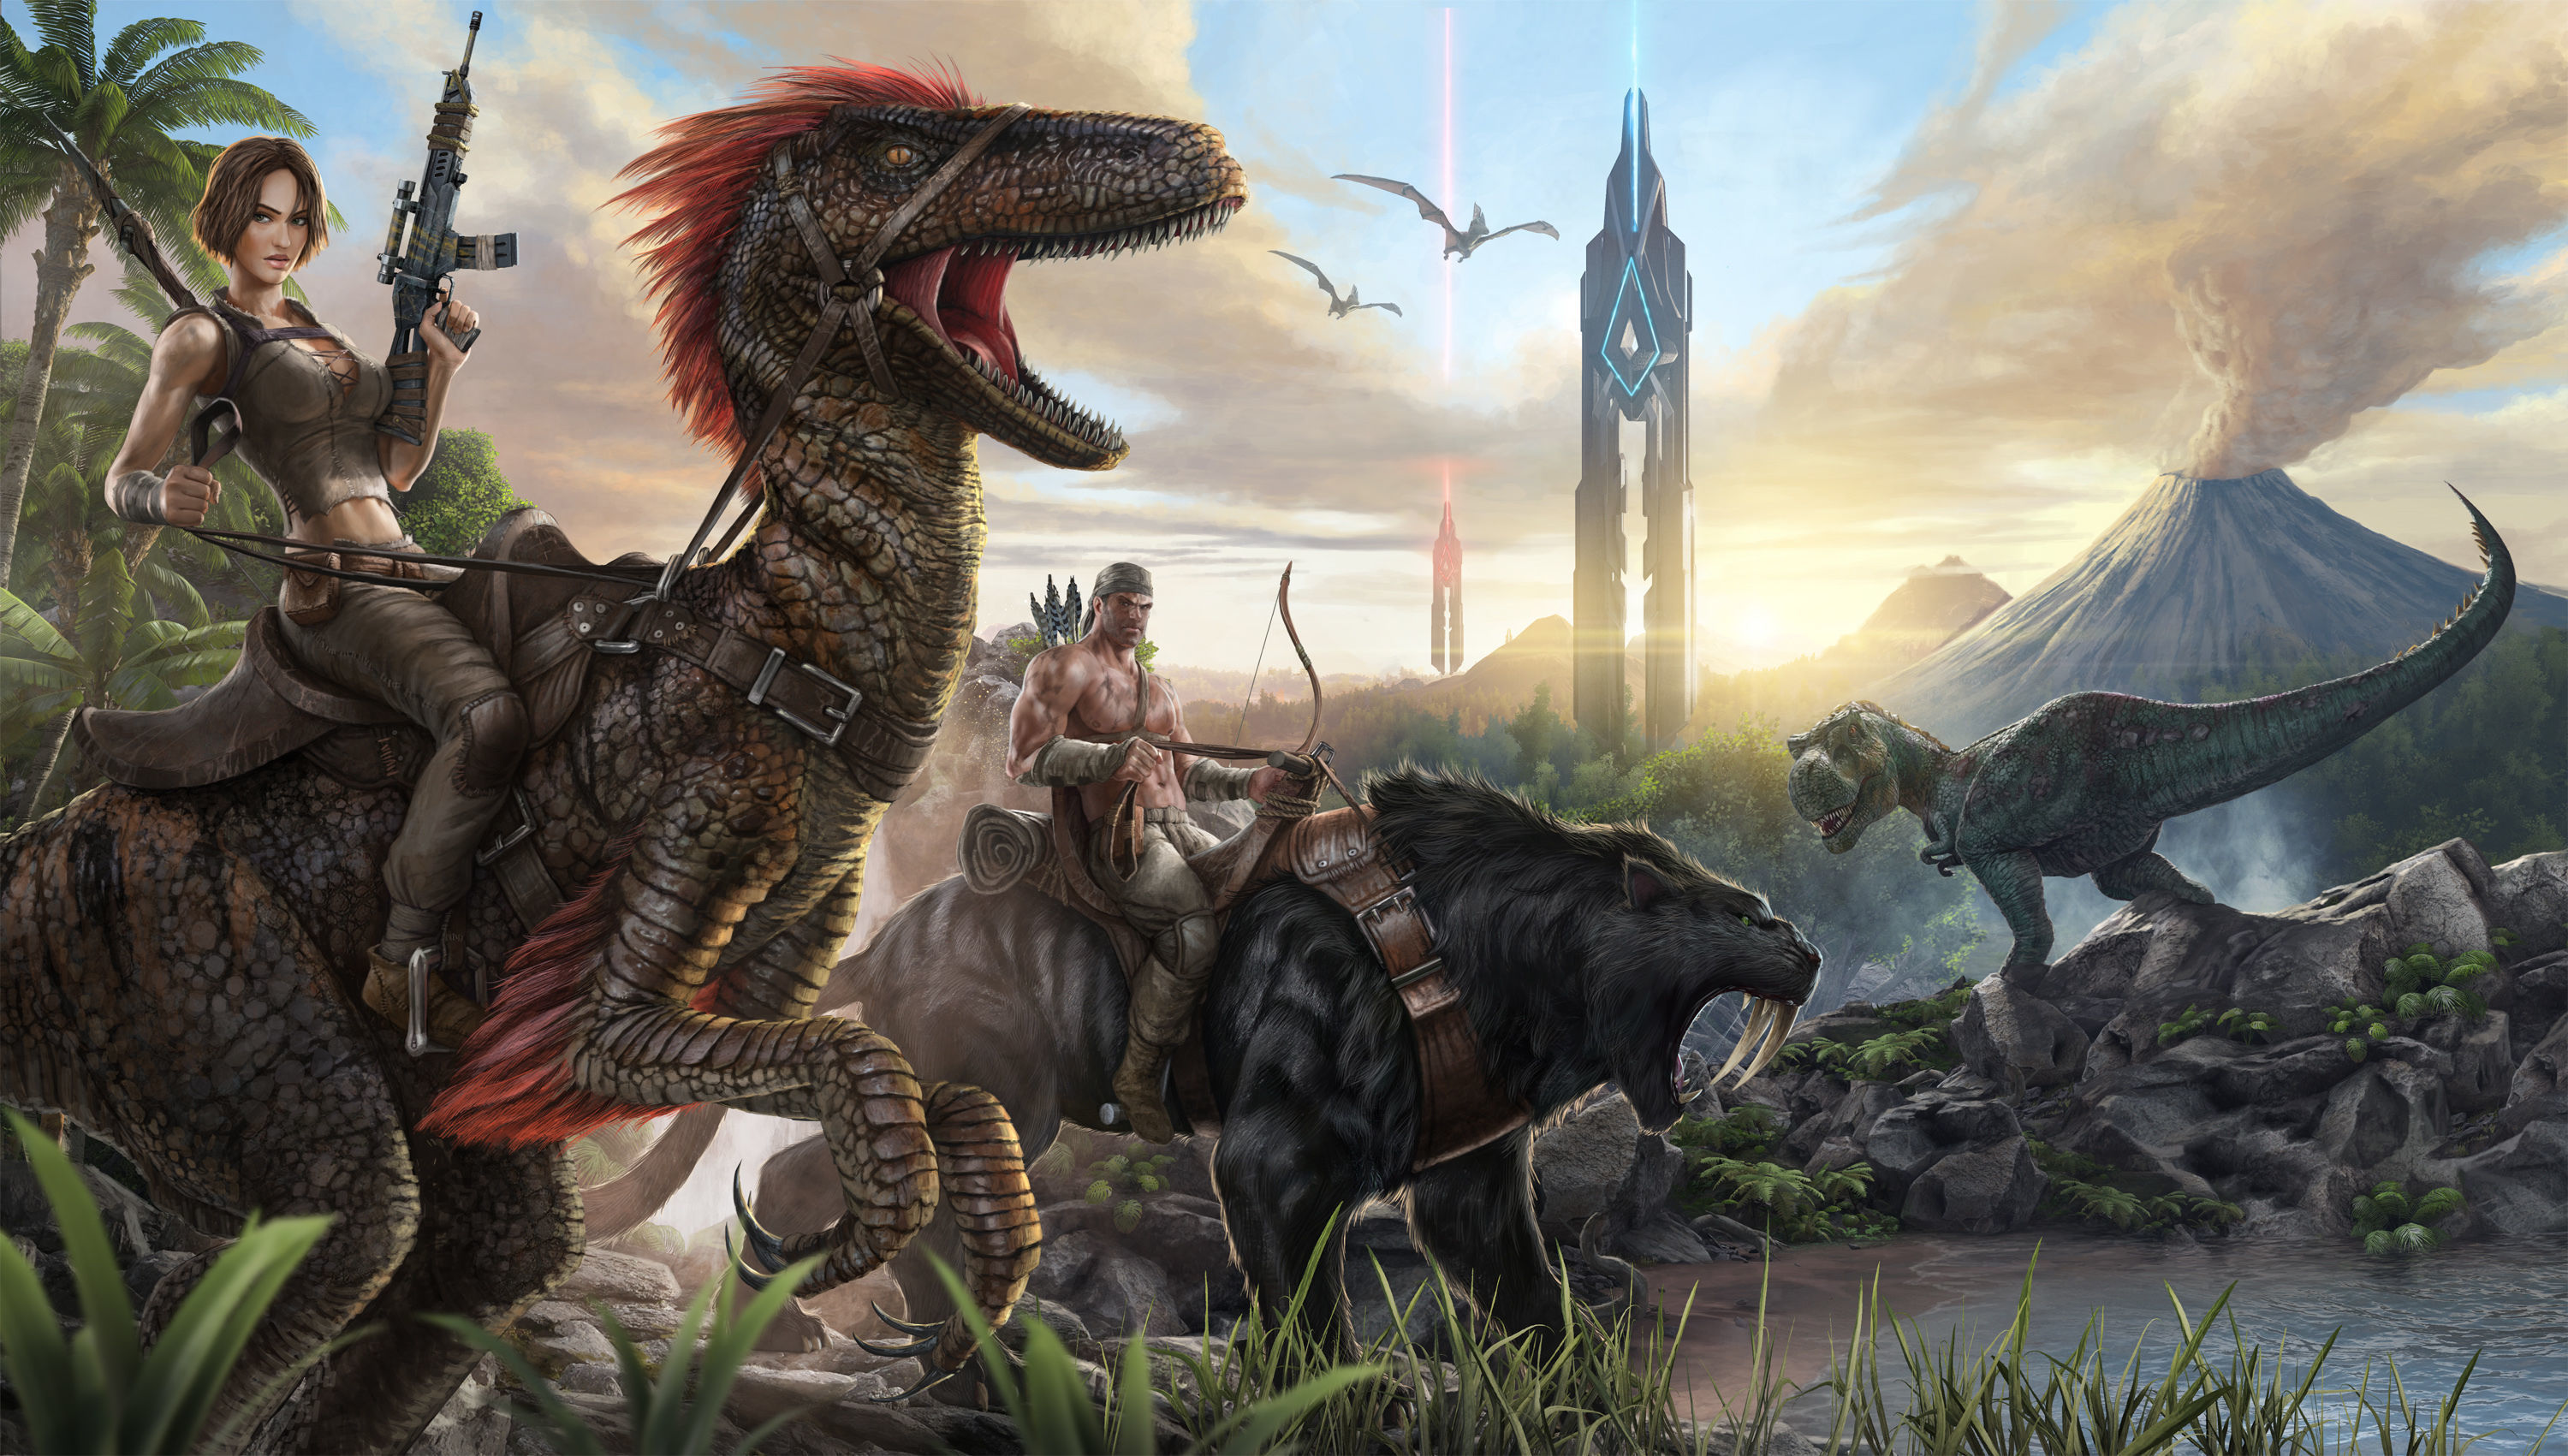 Hd Wallpaper Background Image Id X Video Game Ark Survival Evolved